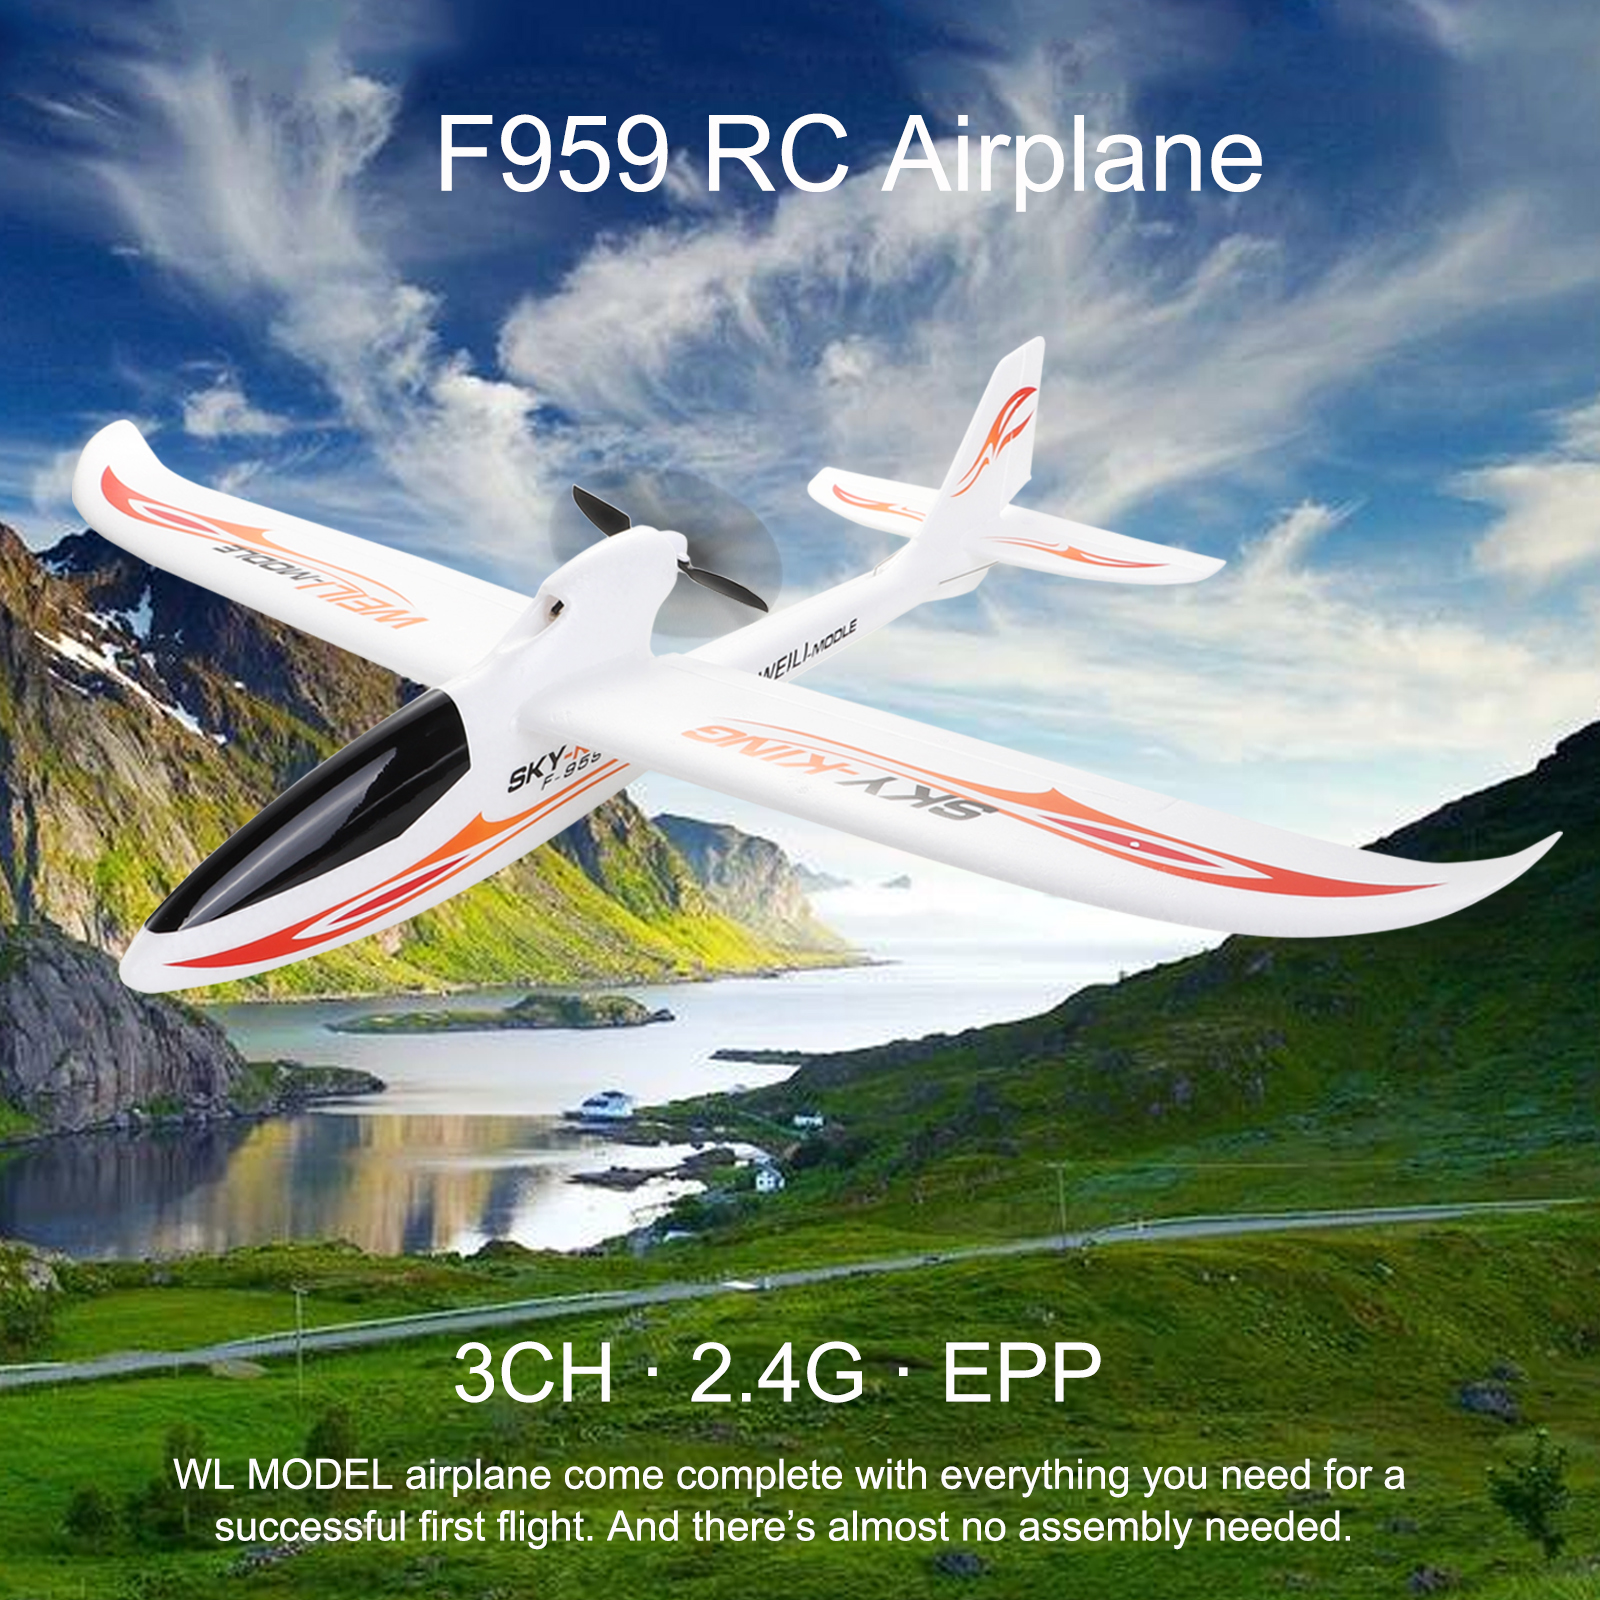 WLtoys F959 RC Airplane 3CH 2.4G Fixed Wing Flying Model Toy gift for Children